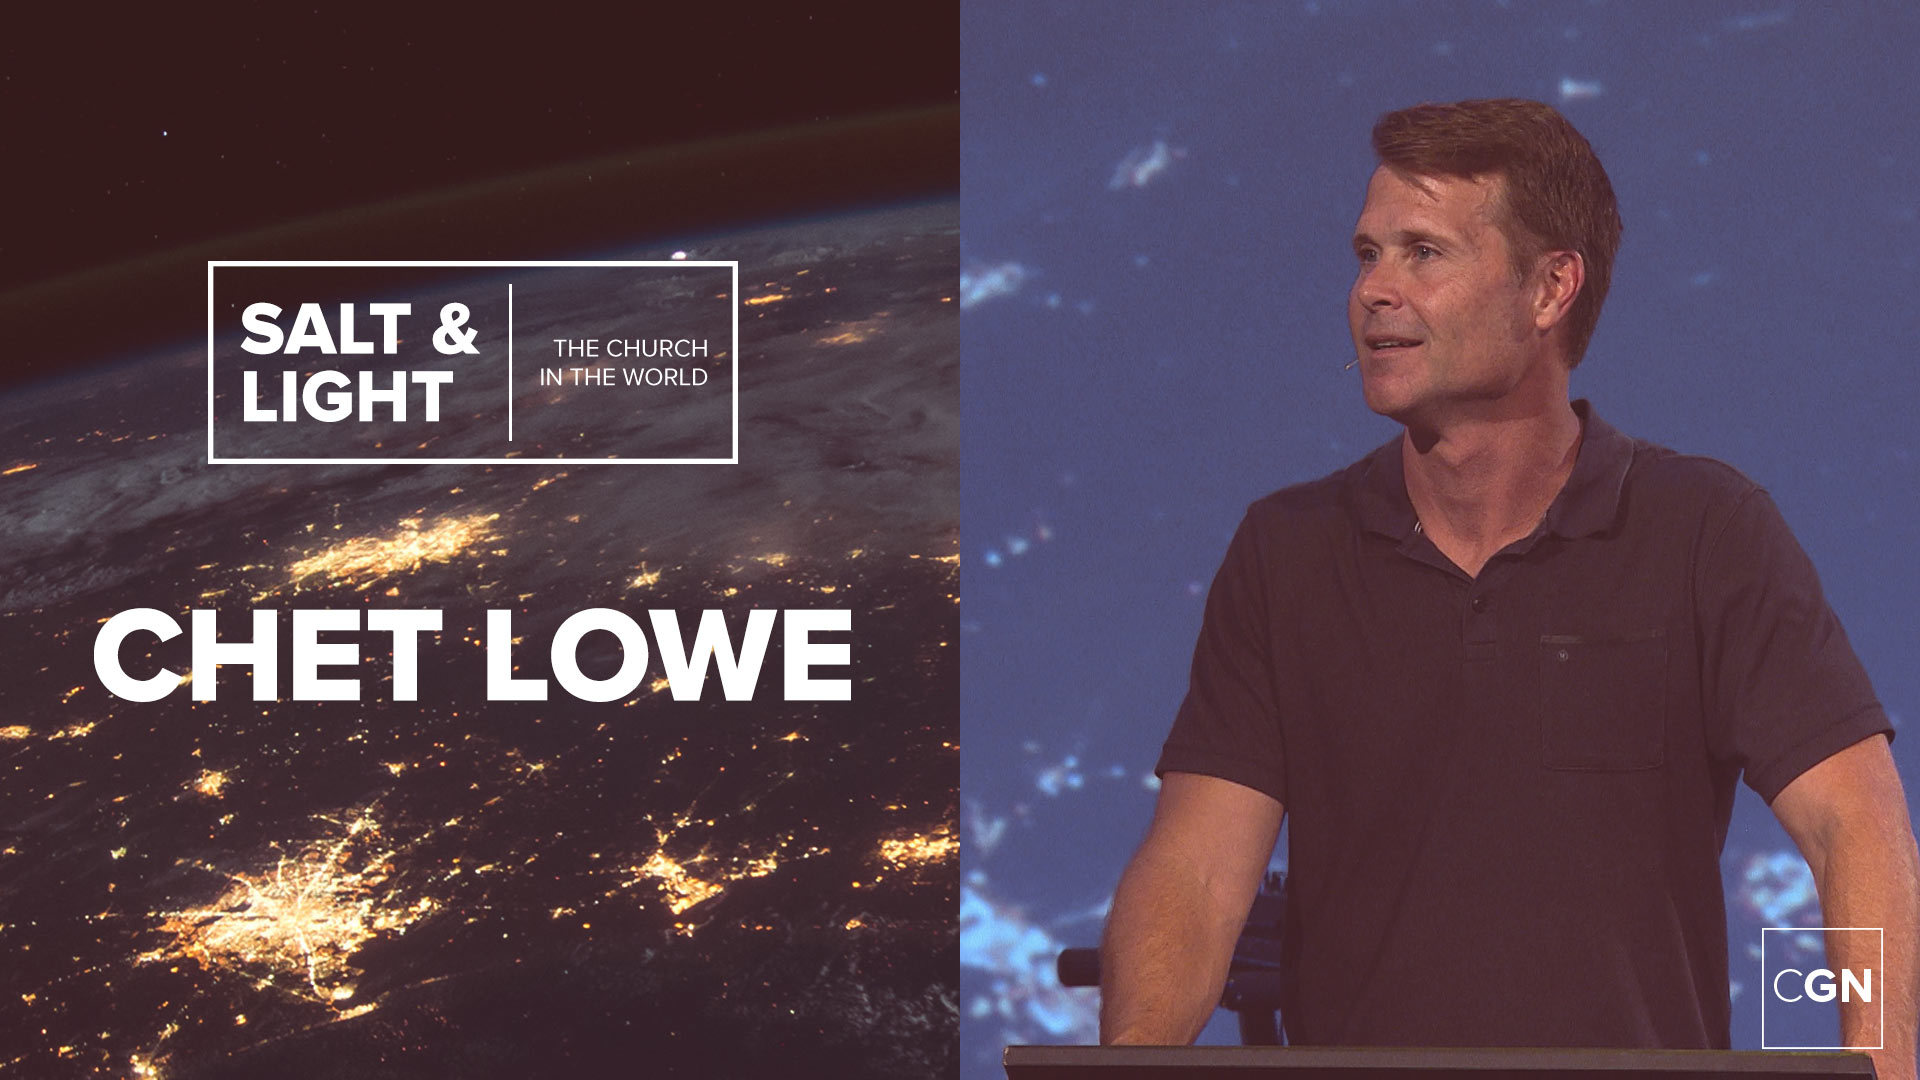 Session 2: Finding the Key - Chet Lowe